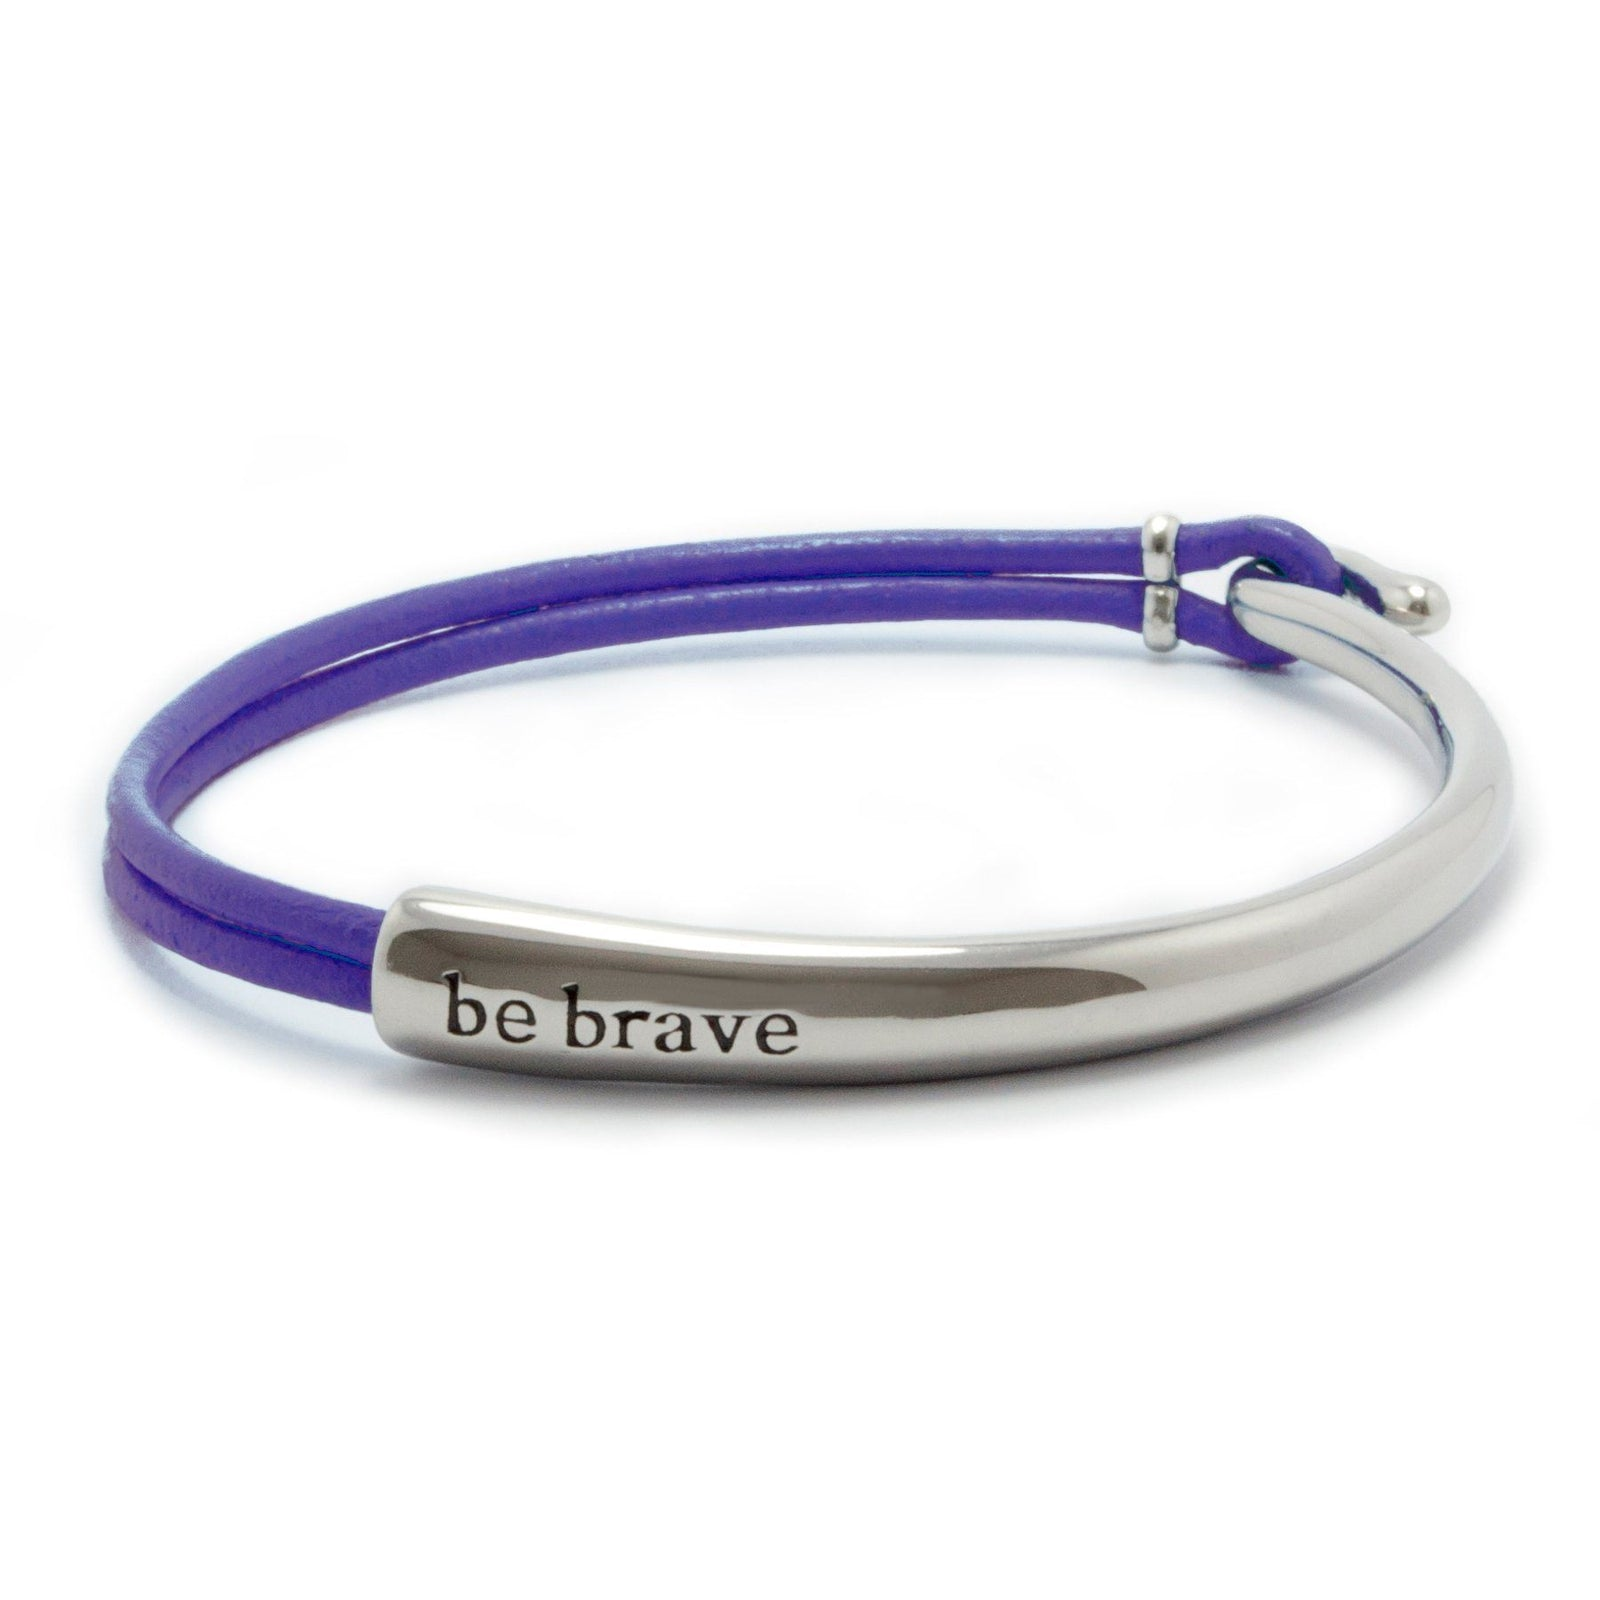 Domestic and Sexual Violence Awareness Bracelet